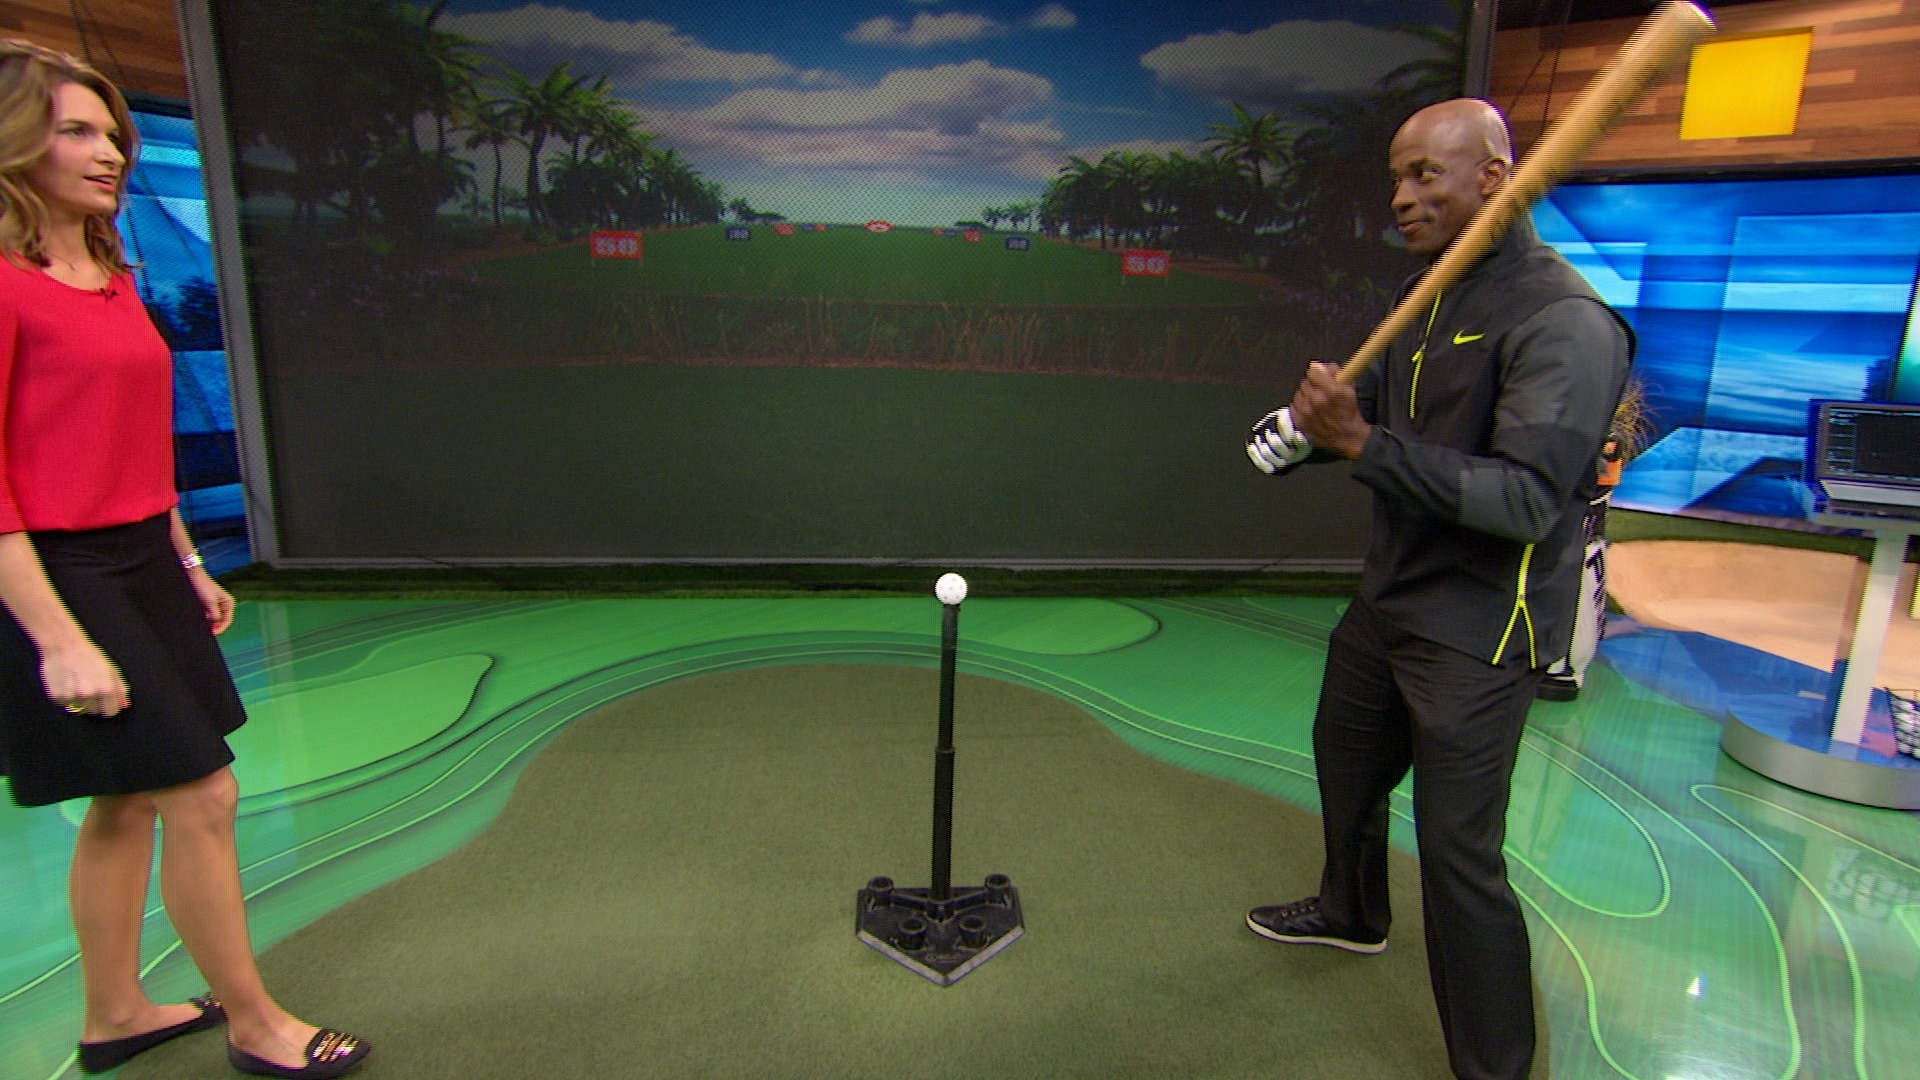 cara robinson gets baseball lesson from fred mcgriff